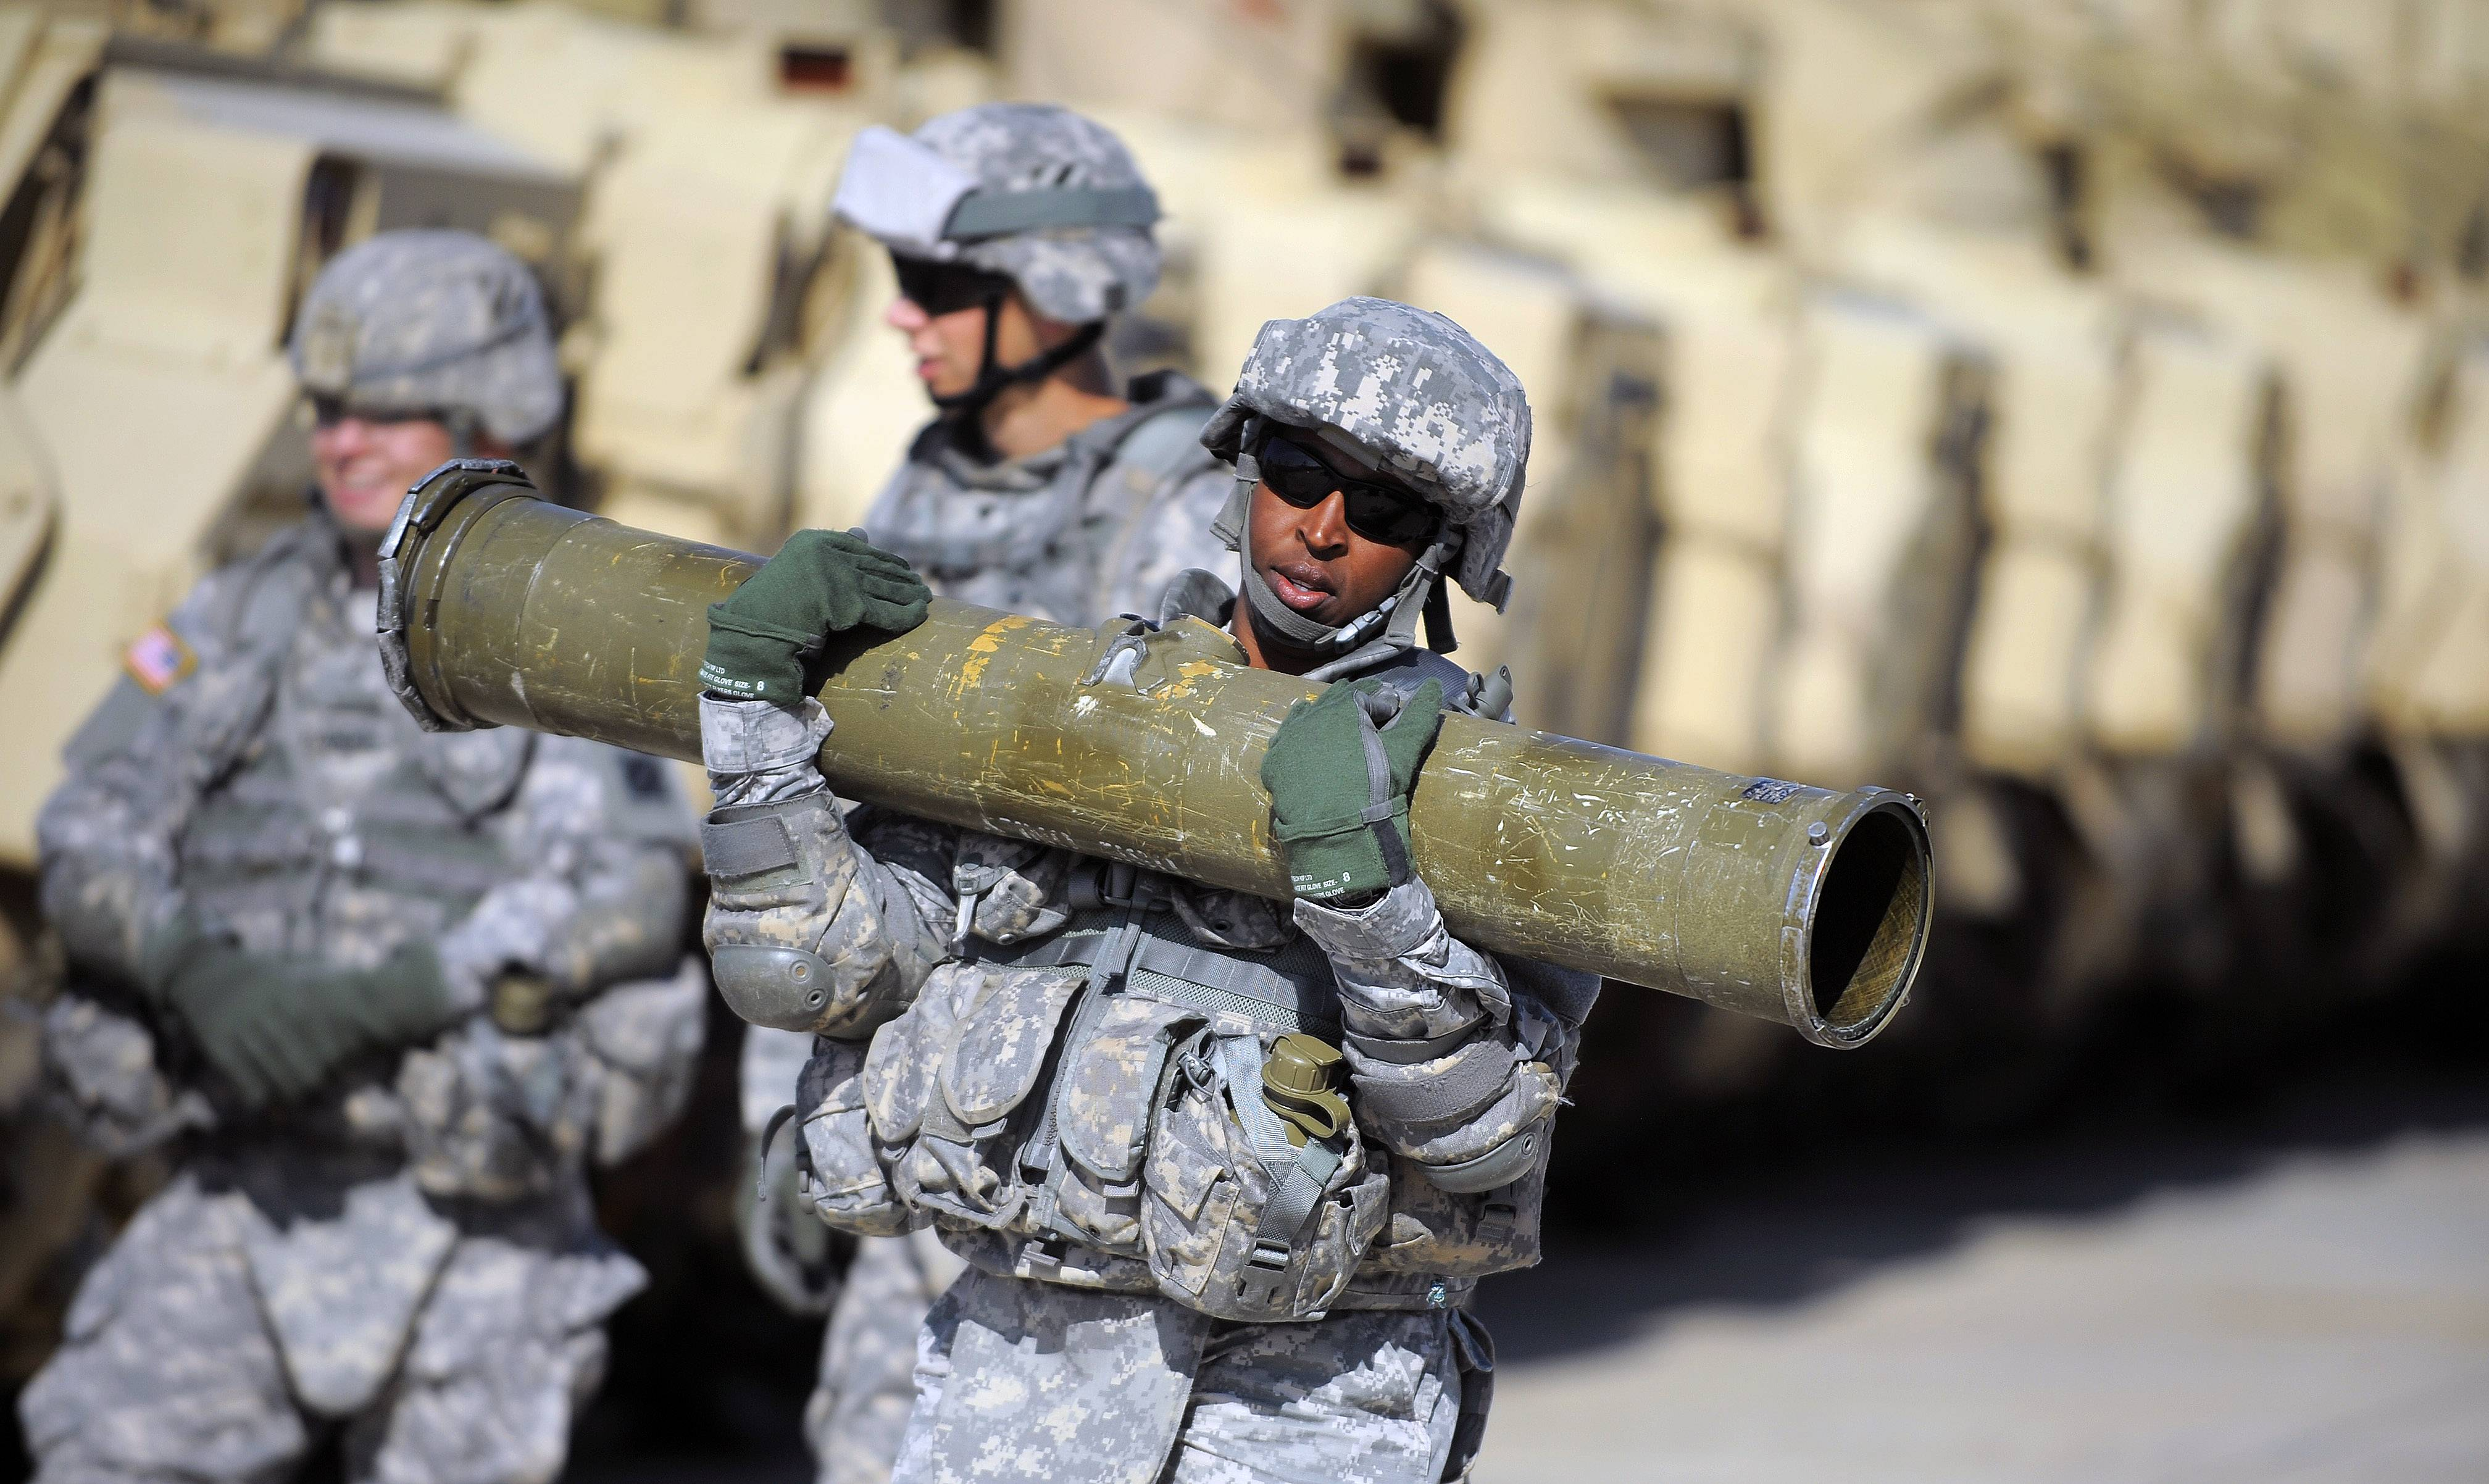 U.S. Army Corp. Jacqueline Beachum carries a 65-pound T.O.W. missile several yards before loading the dummy missile to the launcher of a Bradley Fighting Vehicle.